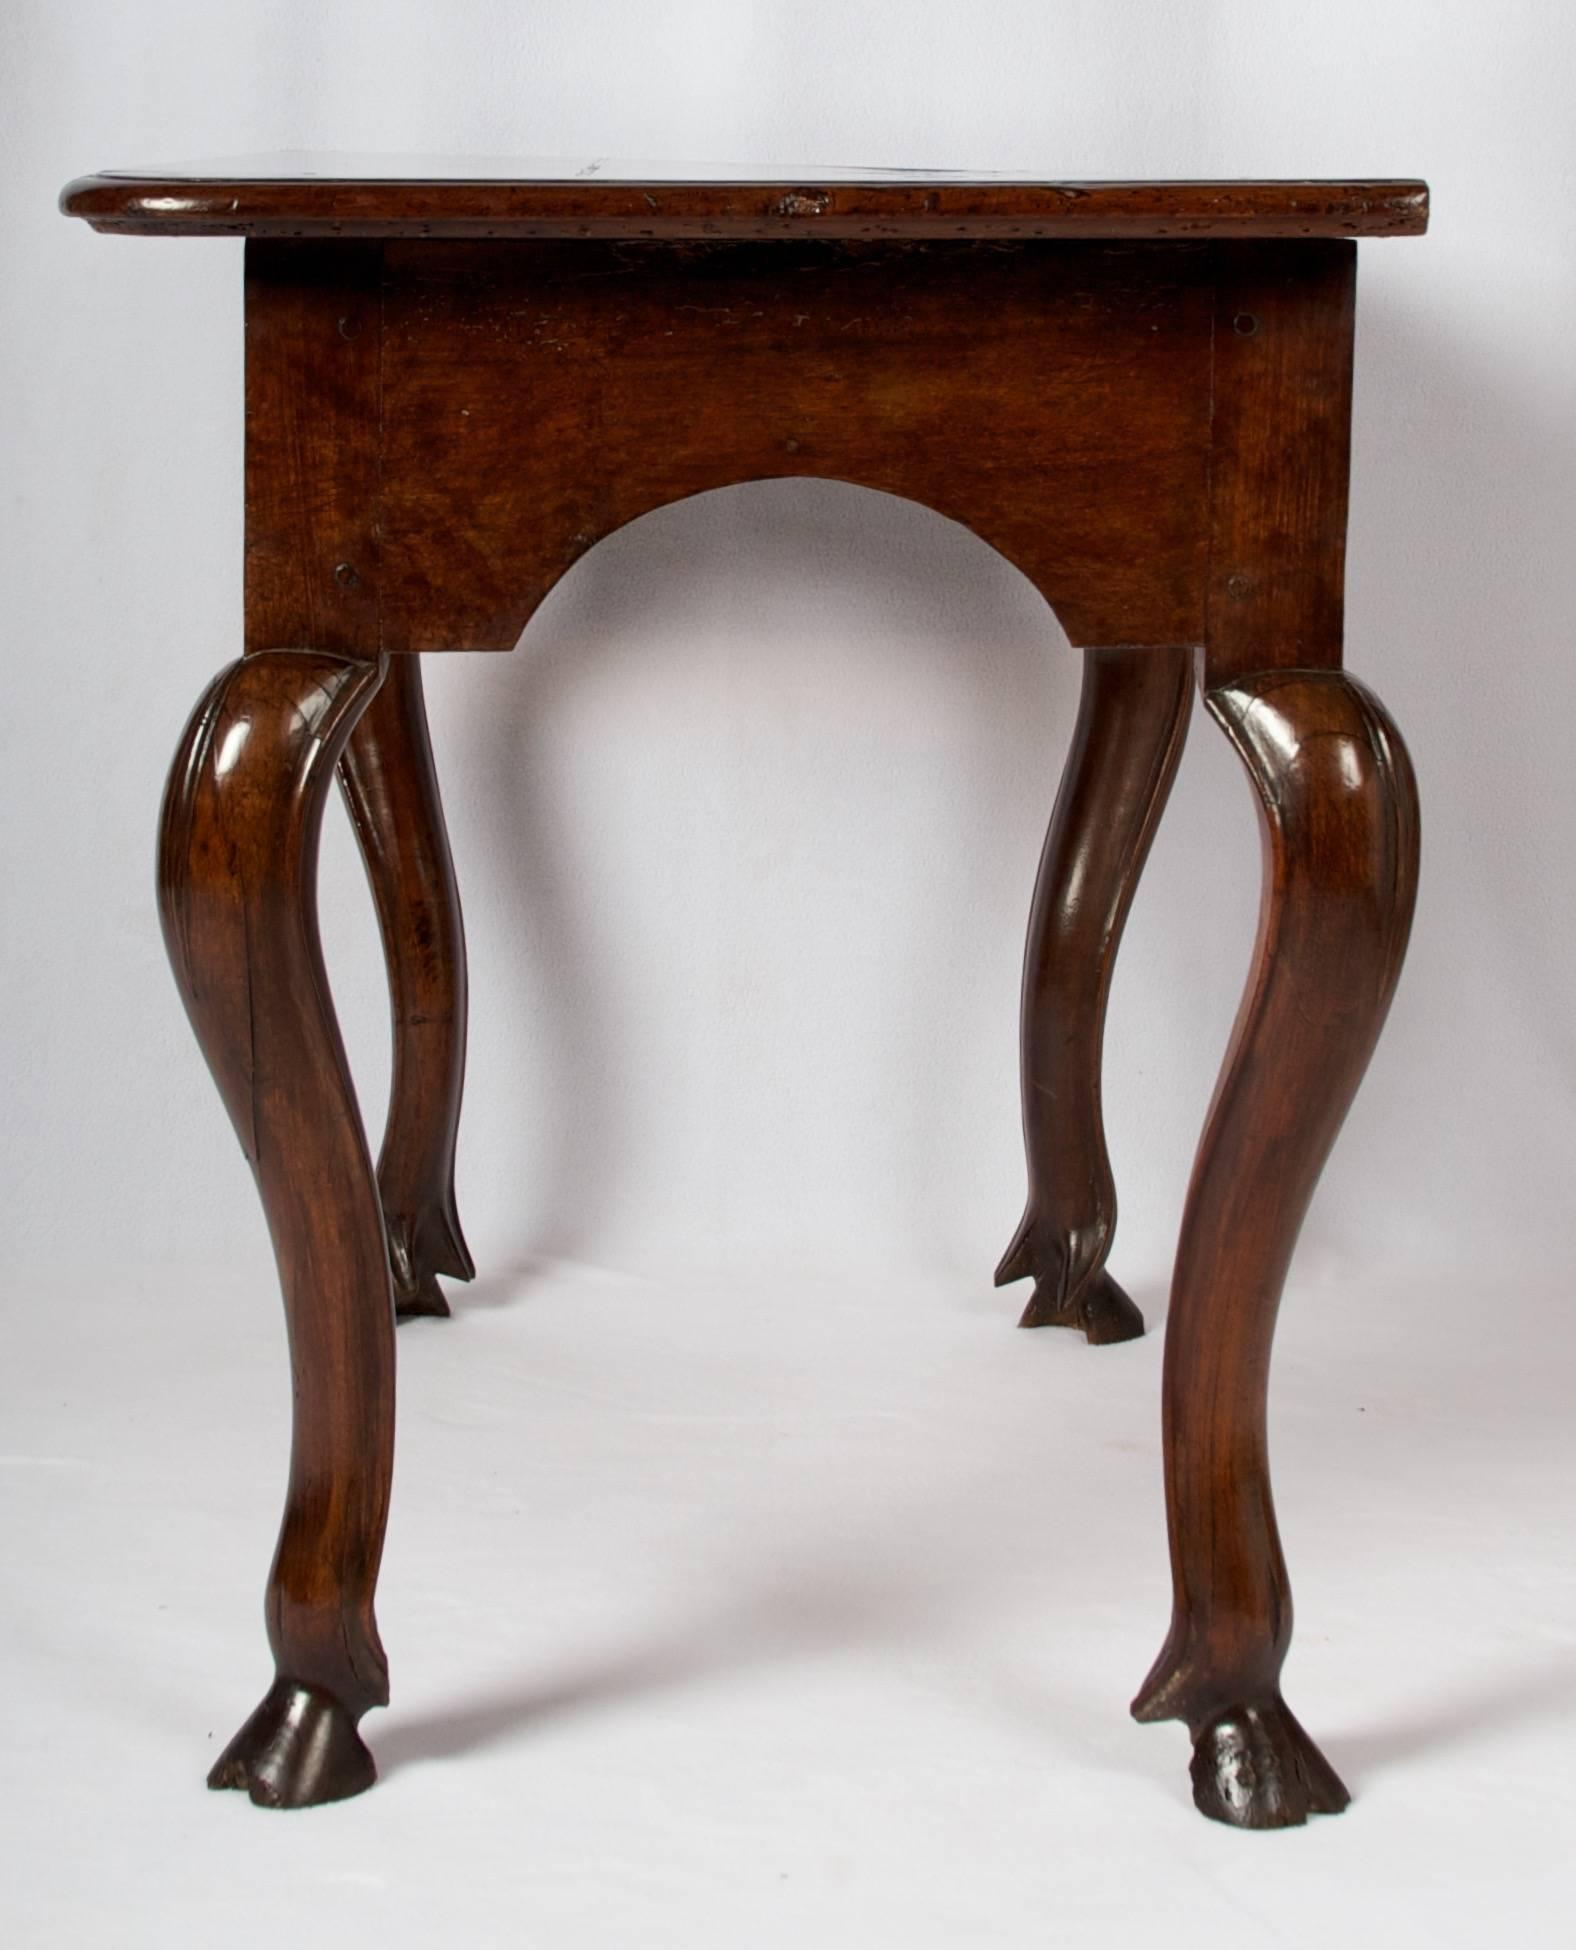 Charmant Baroque Early 18th Century Regence Period Side Table/ Desk  With One Drawer  For Sale